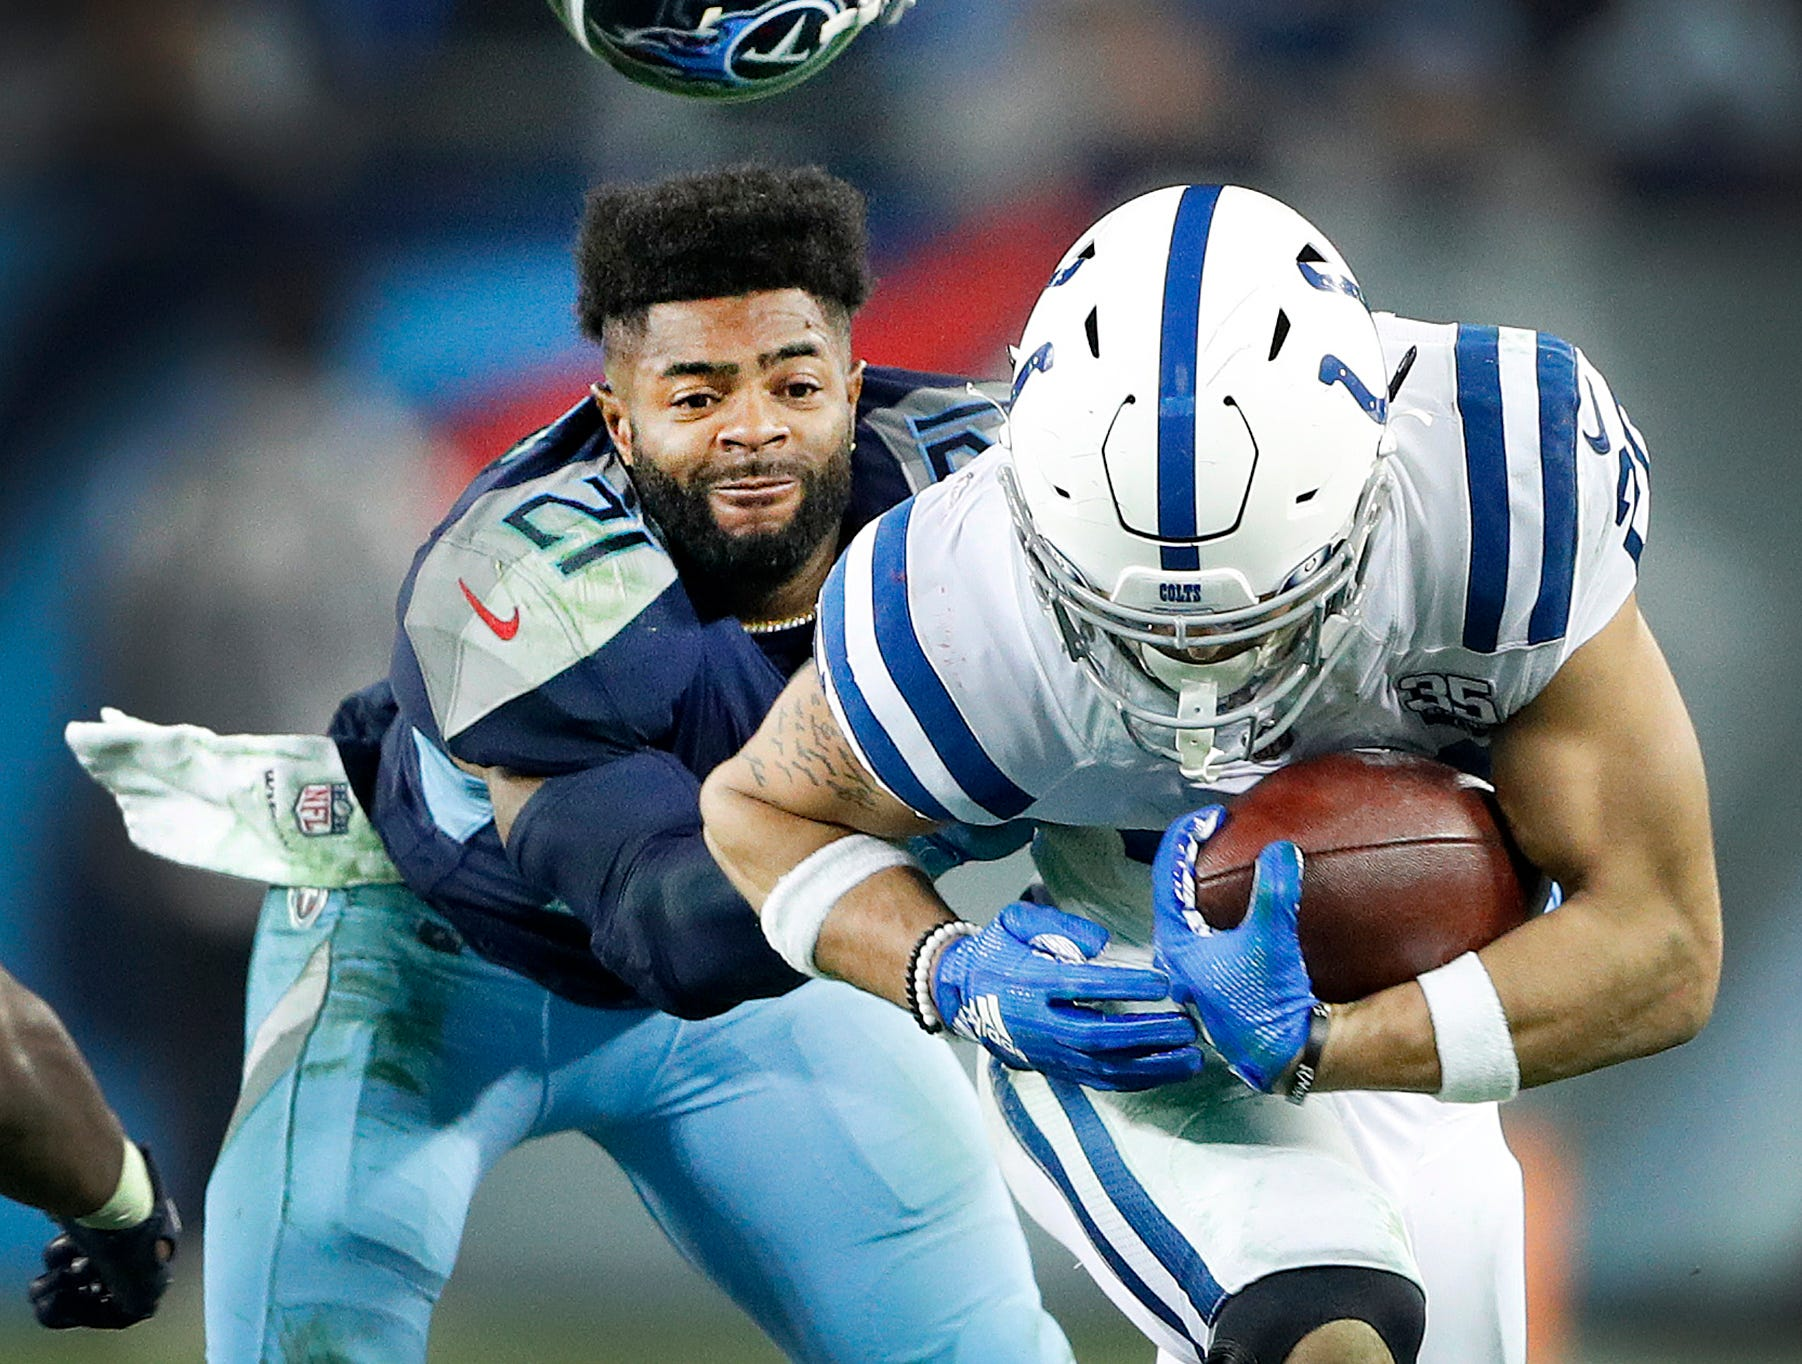 Tennessee Titans cornerback Malcolm Butler (21) loses his hemet as he tries to tackle Indianapolis Colts running back Jordan Wilkins (20) in the fourth quarter of their game against at Nissan Stadium in Nashville, Tenn., on Sunday, Dec. 30, 2018.